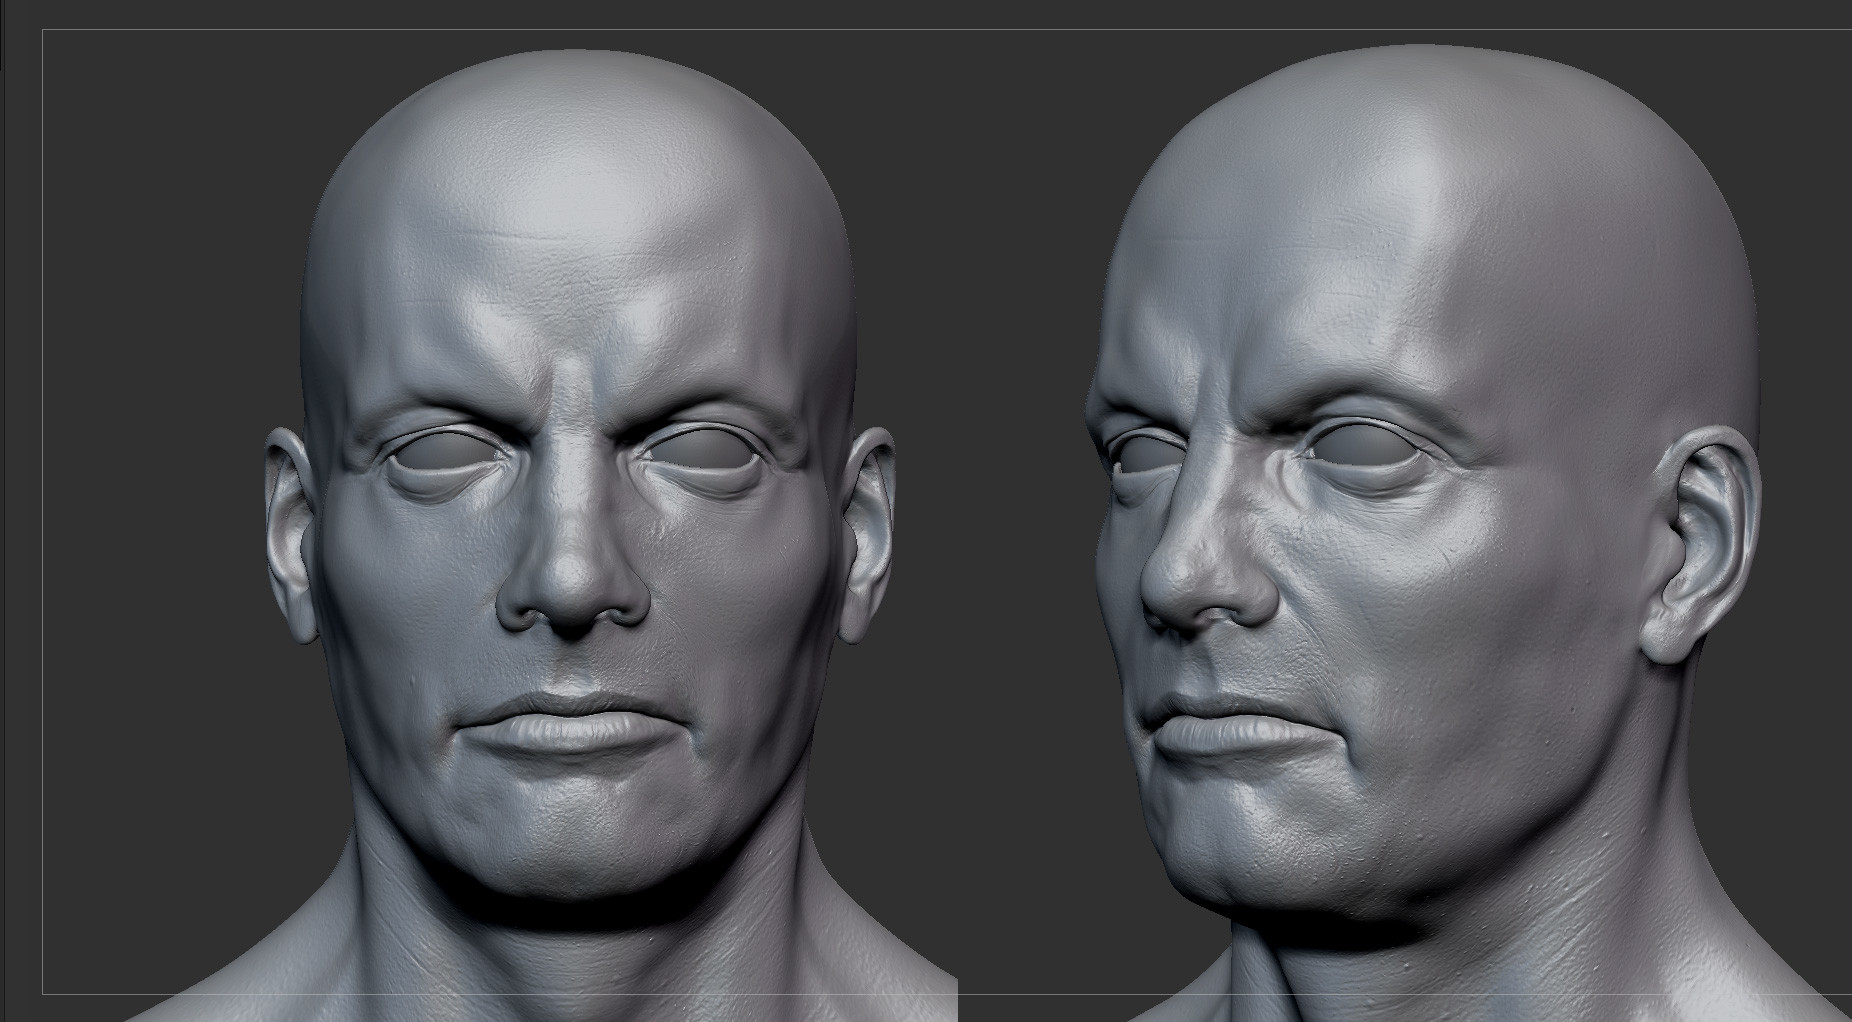 David hagemann screenshotszbrush